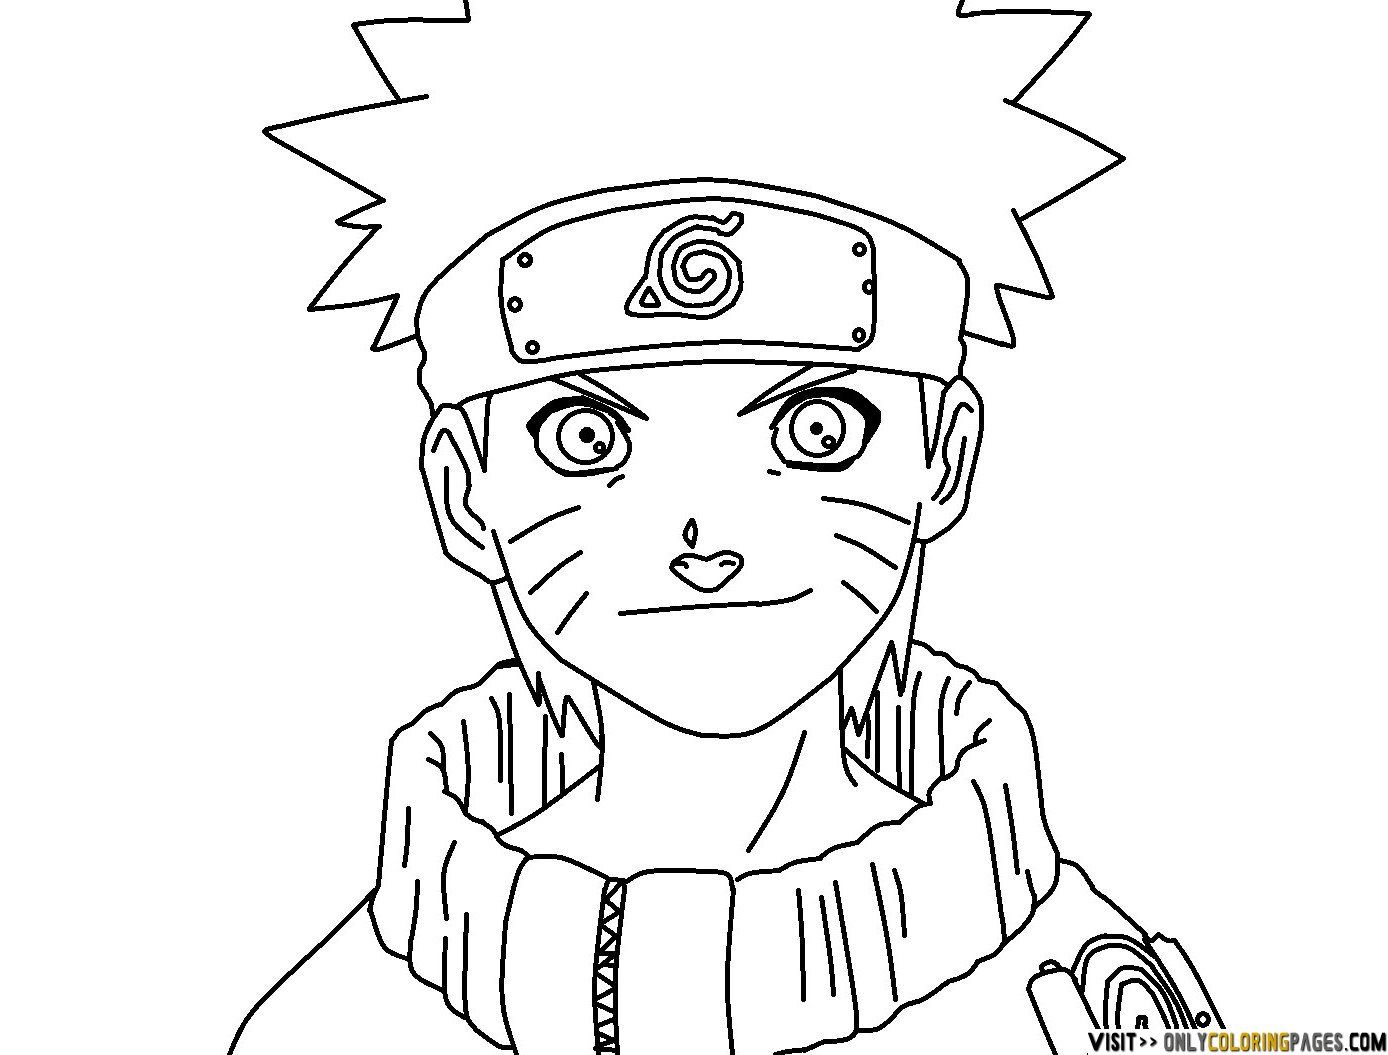 naruto coloring pages, printable naruto coloring pages, free naruto ...